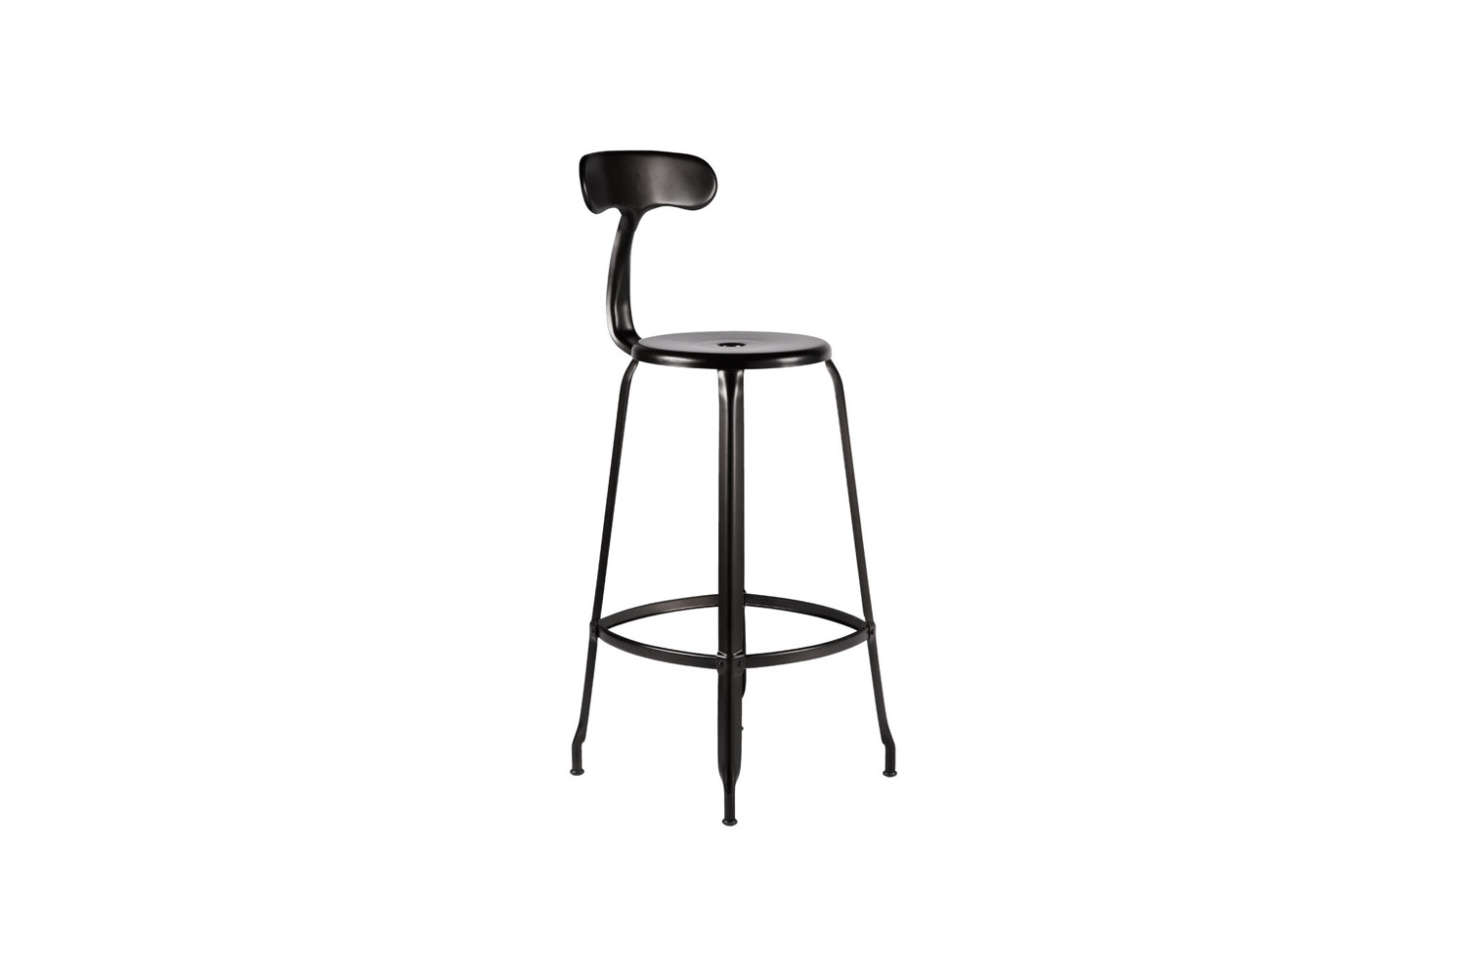 The Nicolle Counter Stool in matte black is $369 at Rejuvenation. For more on the counter stool, see our postDesign Sleuth: Industrial Kitchen Stools from Nicolle in France.